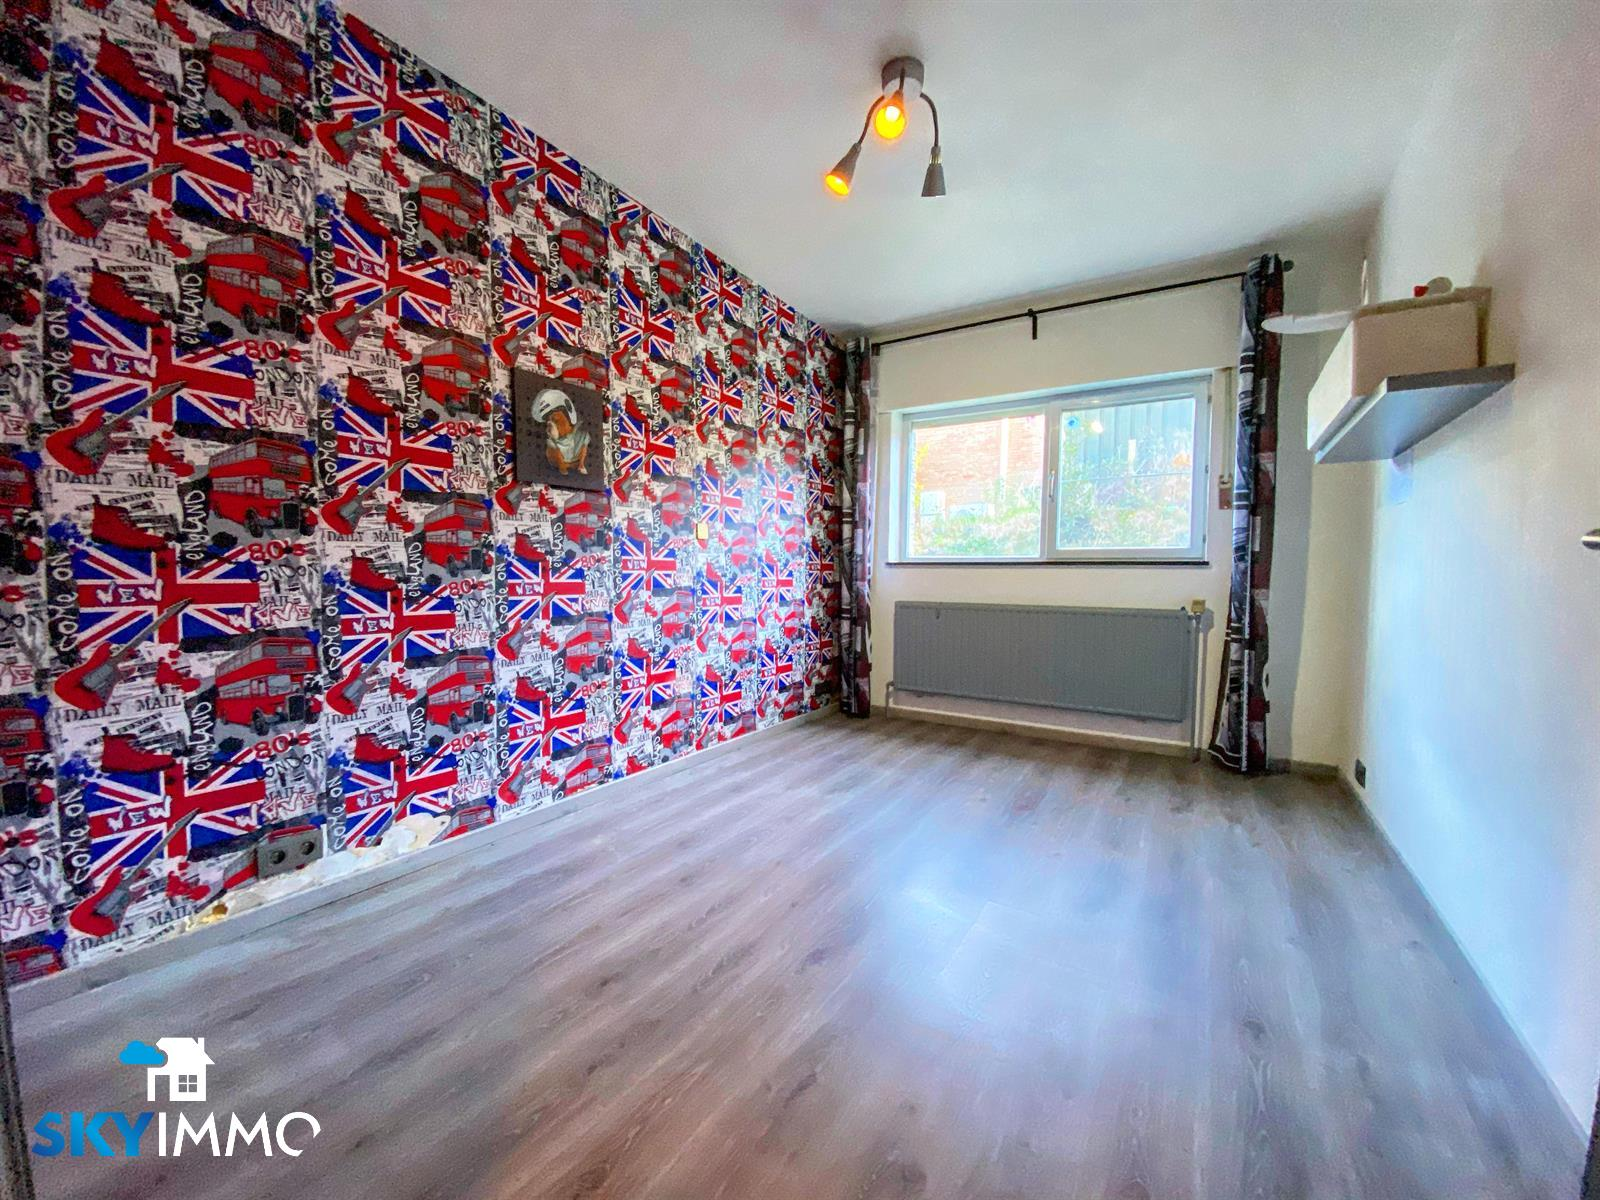 Bungalow - Flemalle - #4363206-26